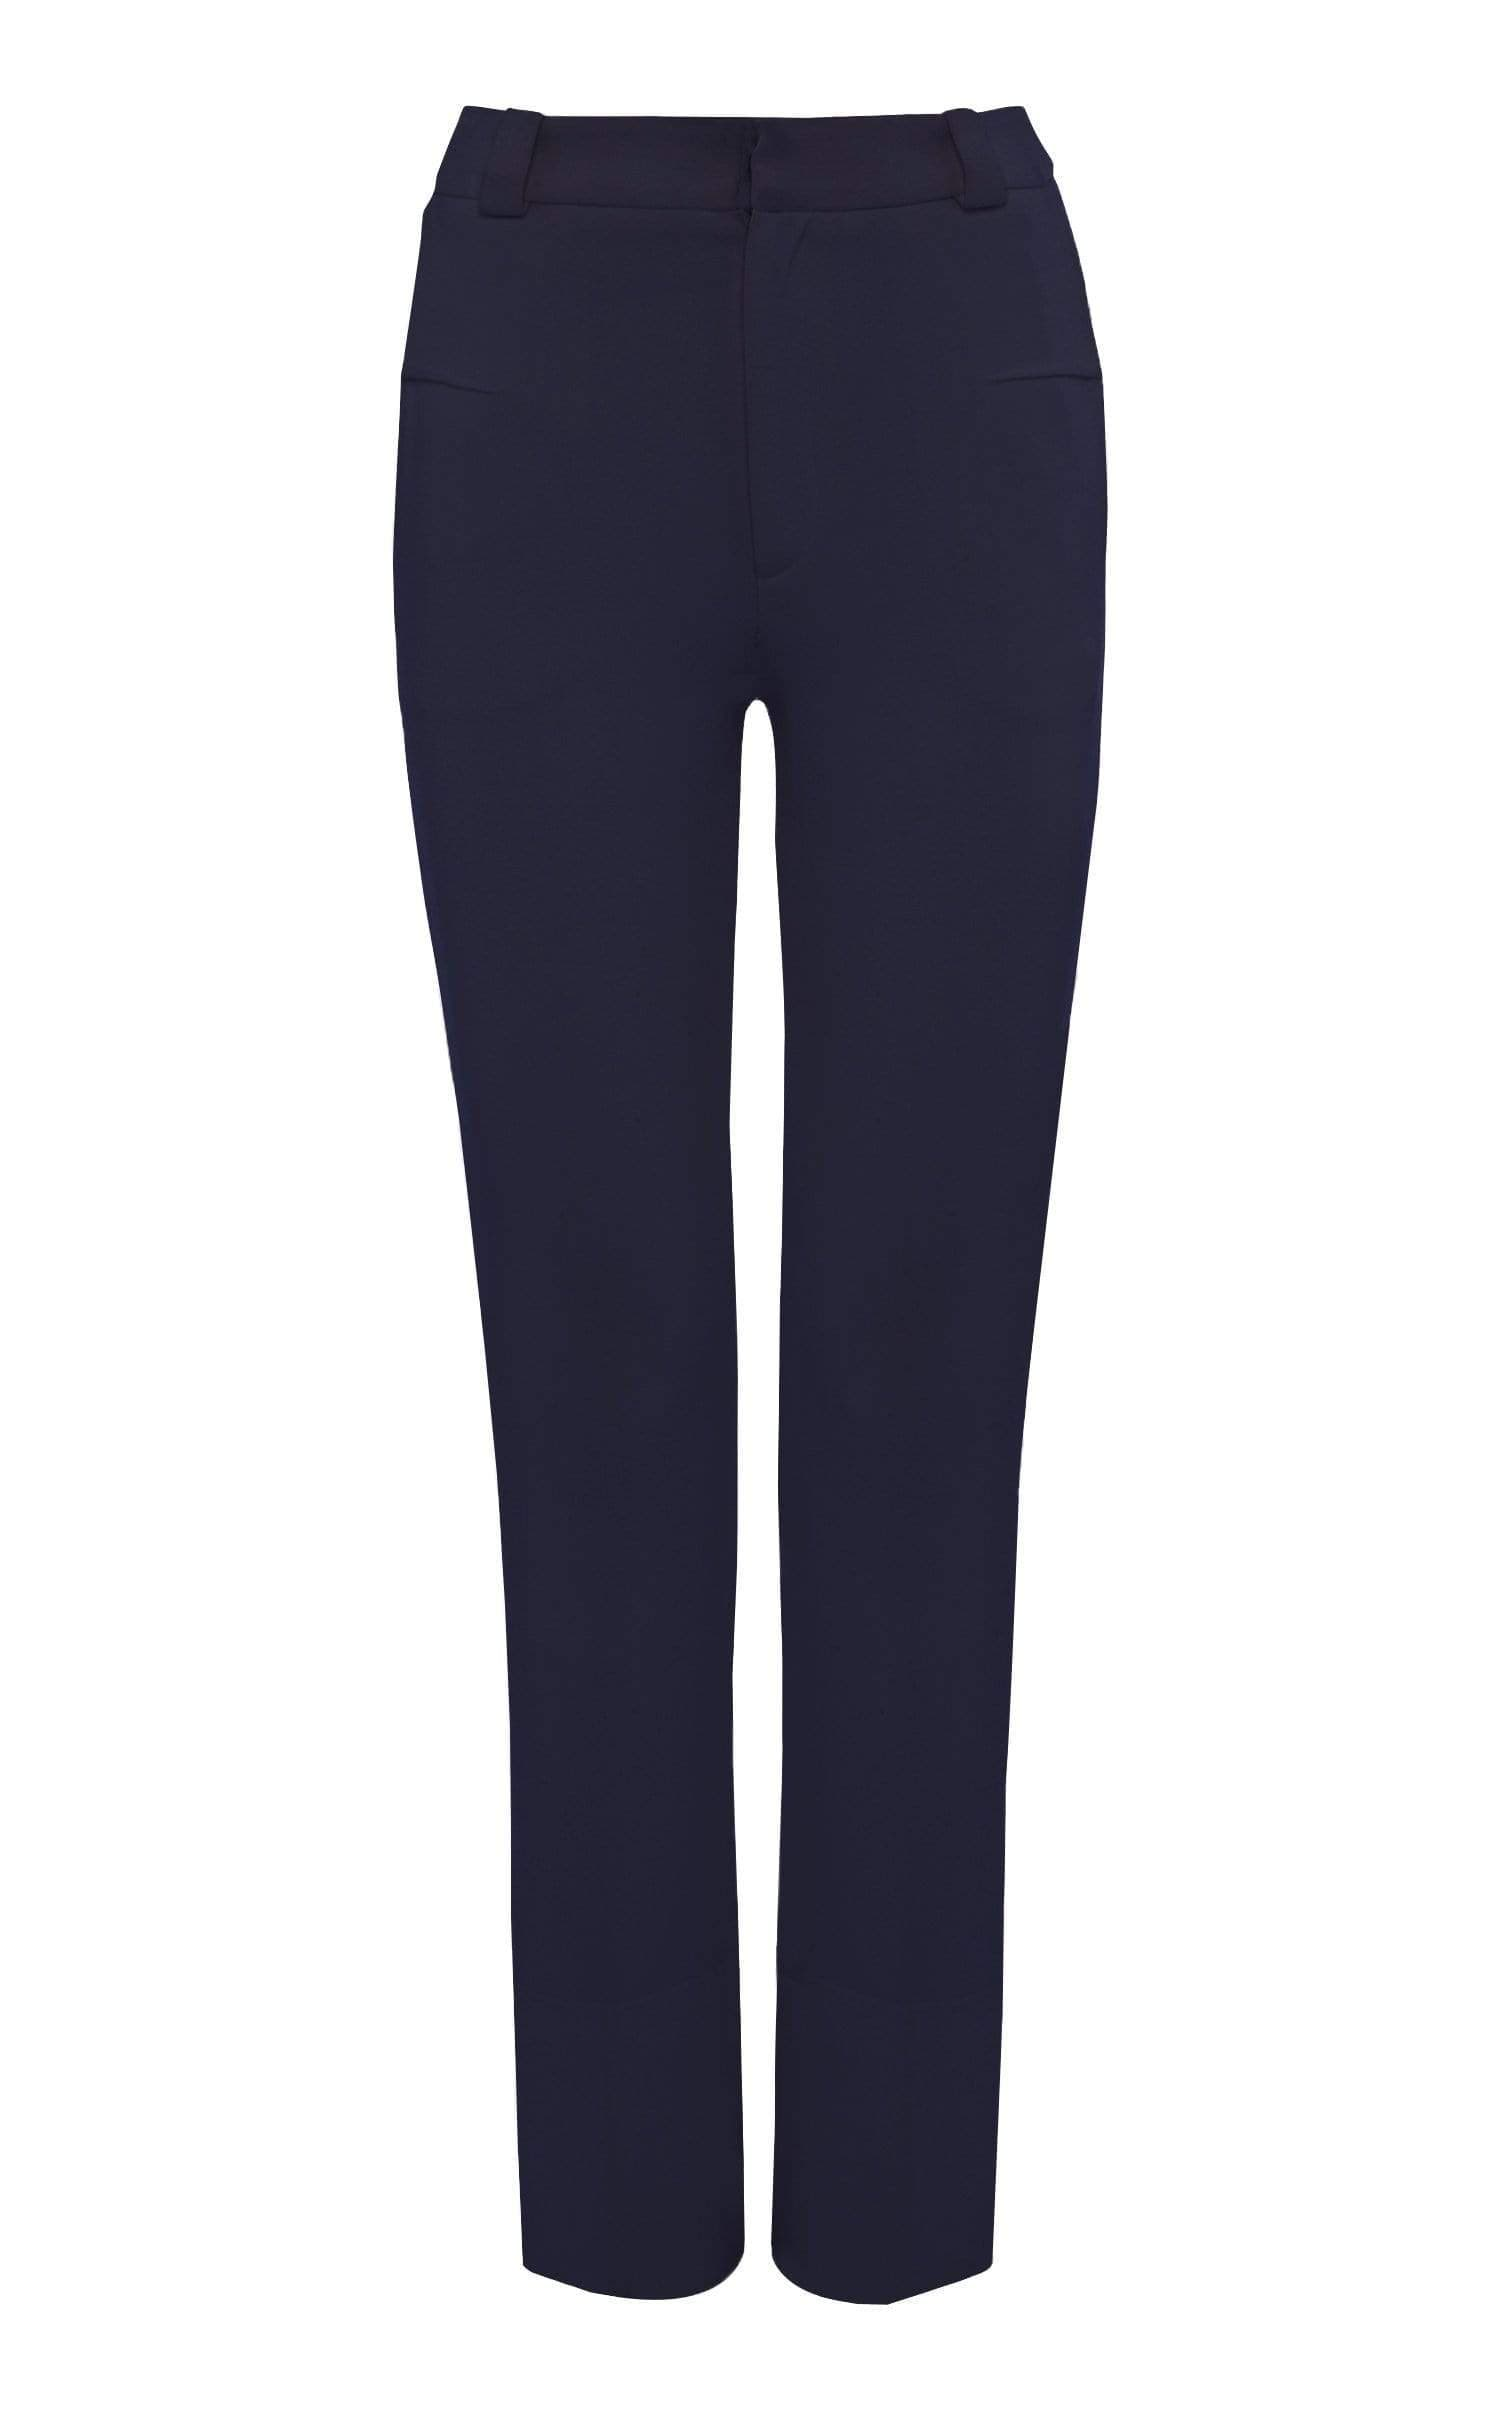 Lacerta Trouser In Navy from Roland Mouret